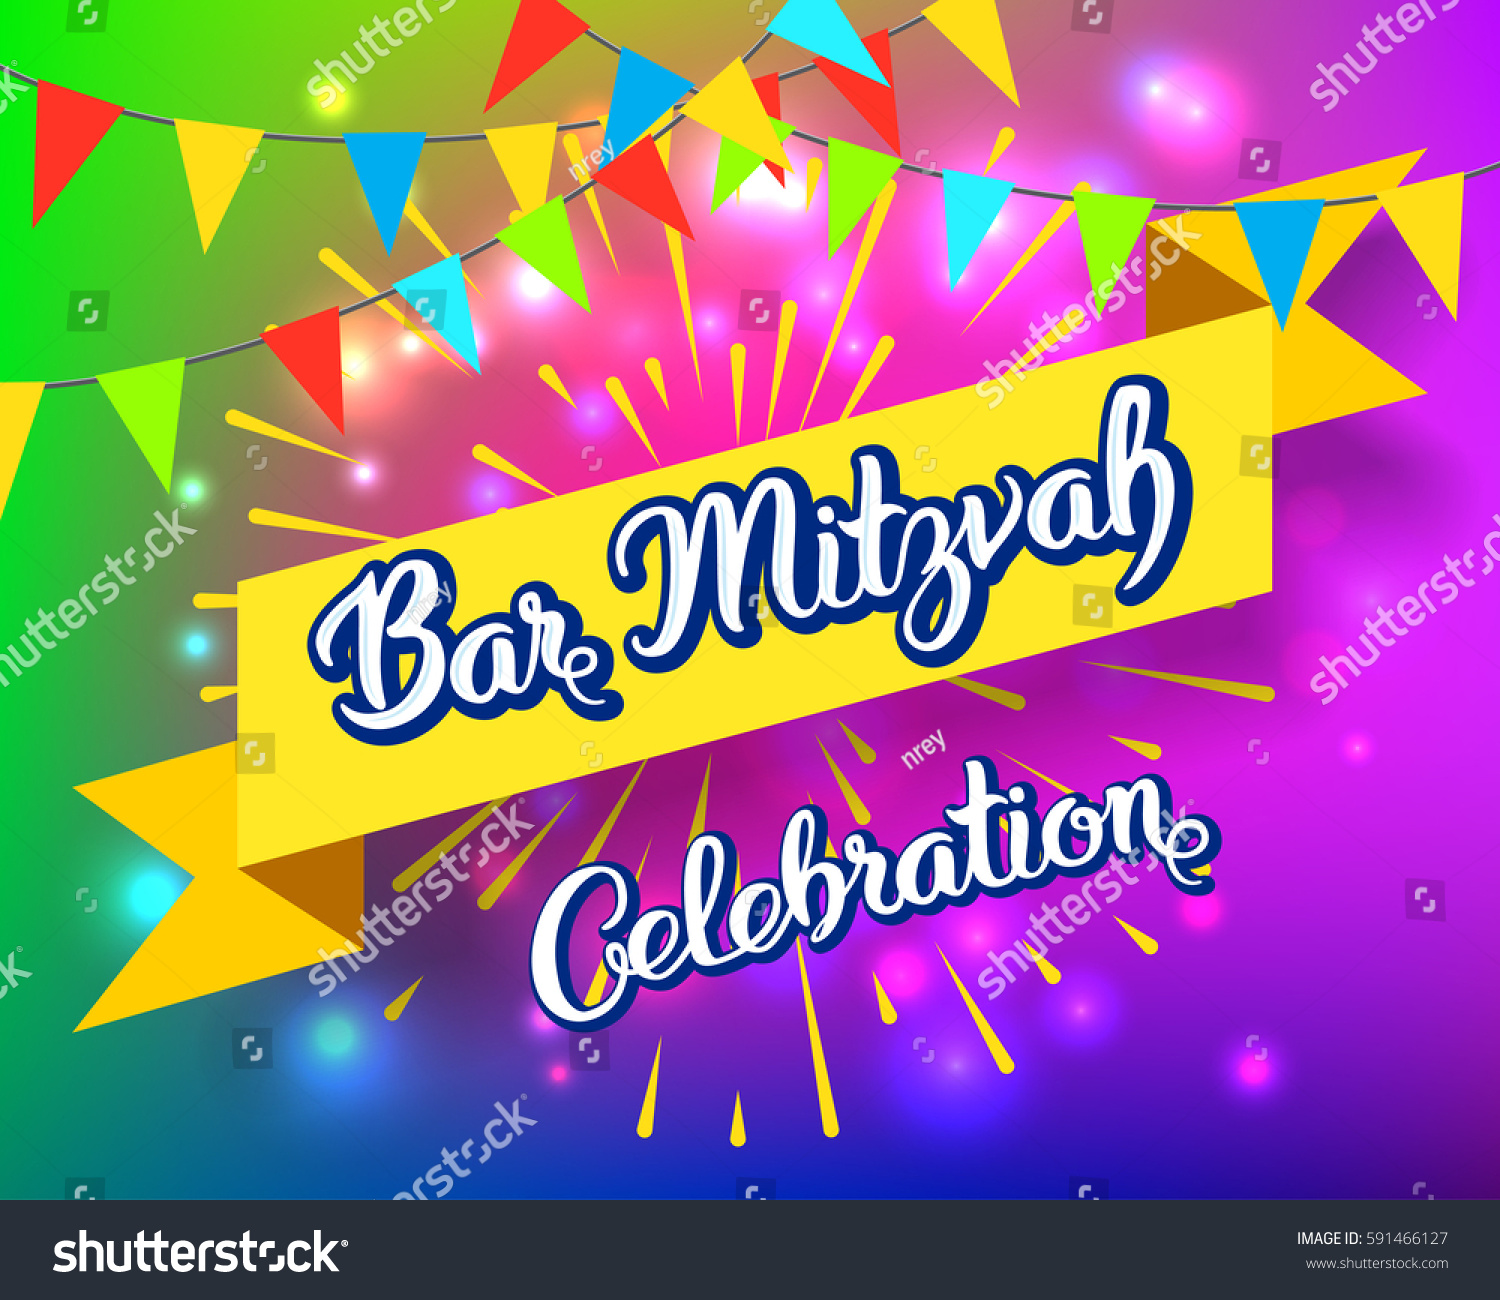 Bar mitzvah party invitation congratulation card stock vector bar mitzvah party invitation congratulation card holiday of coming of age jewish rituals kristyandbryce Image collections